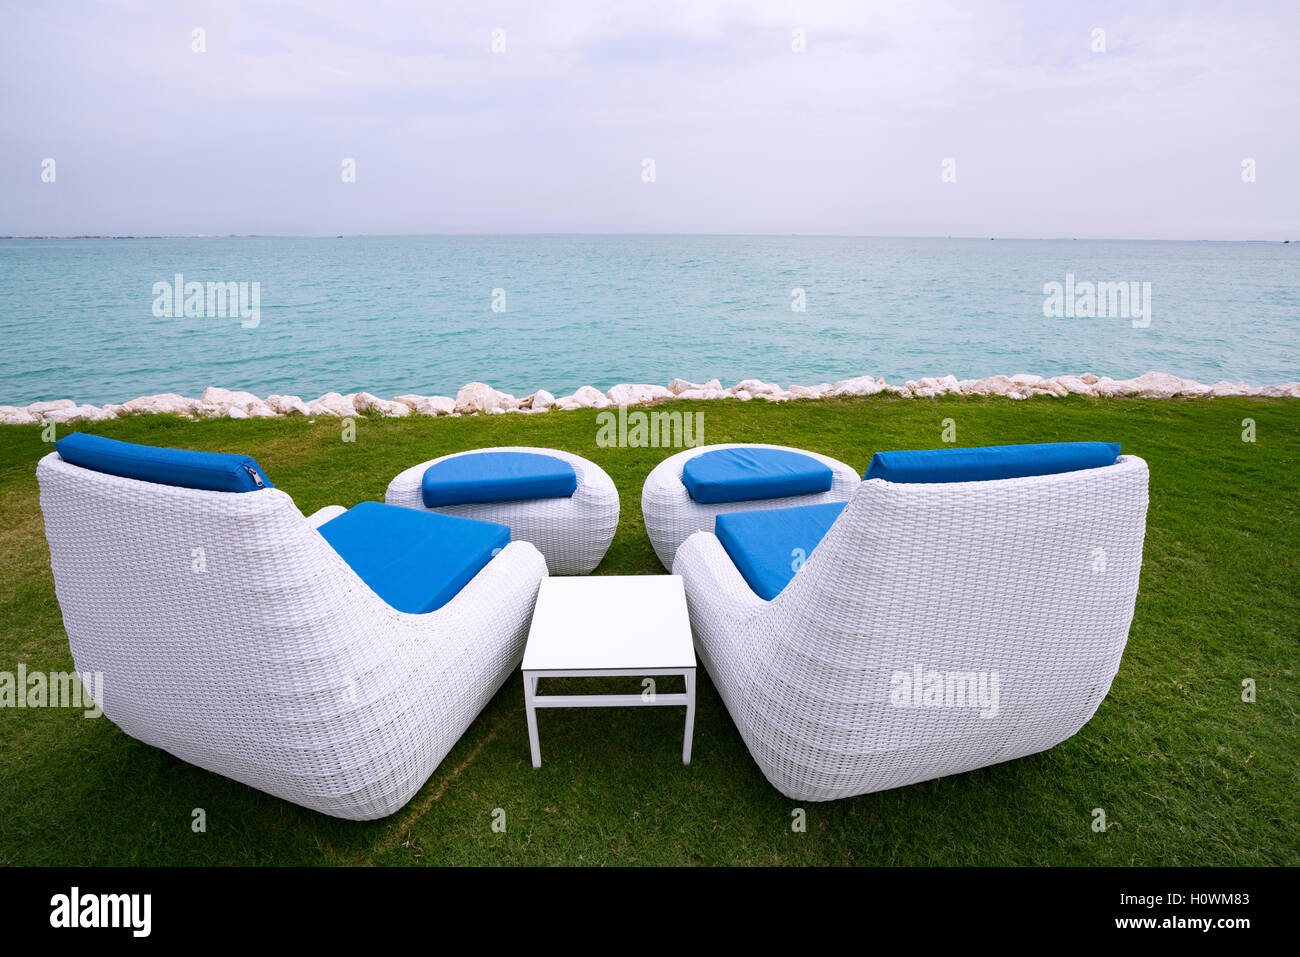 Two white sun loungers beside the sea in Doha Qatar - Stock Image